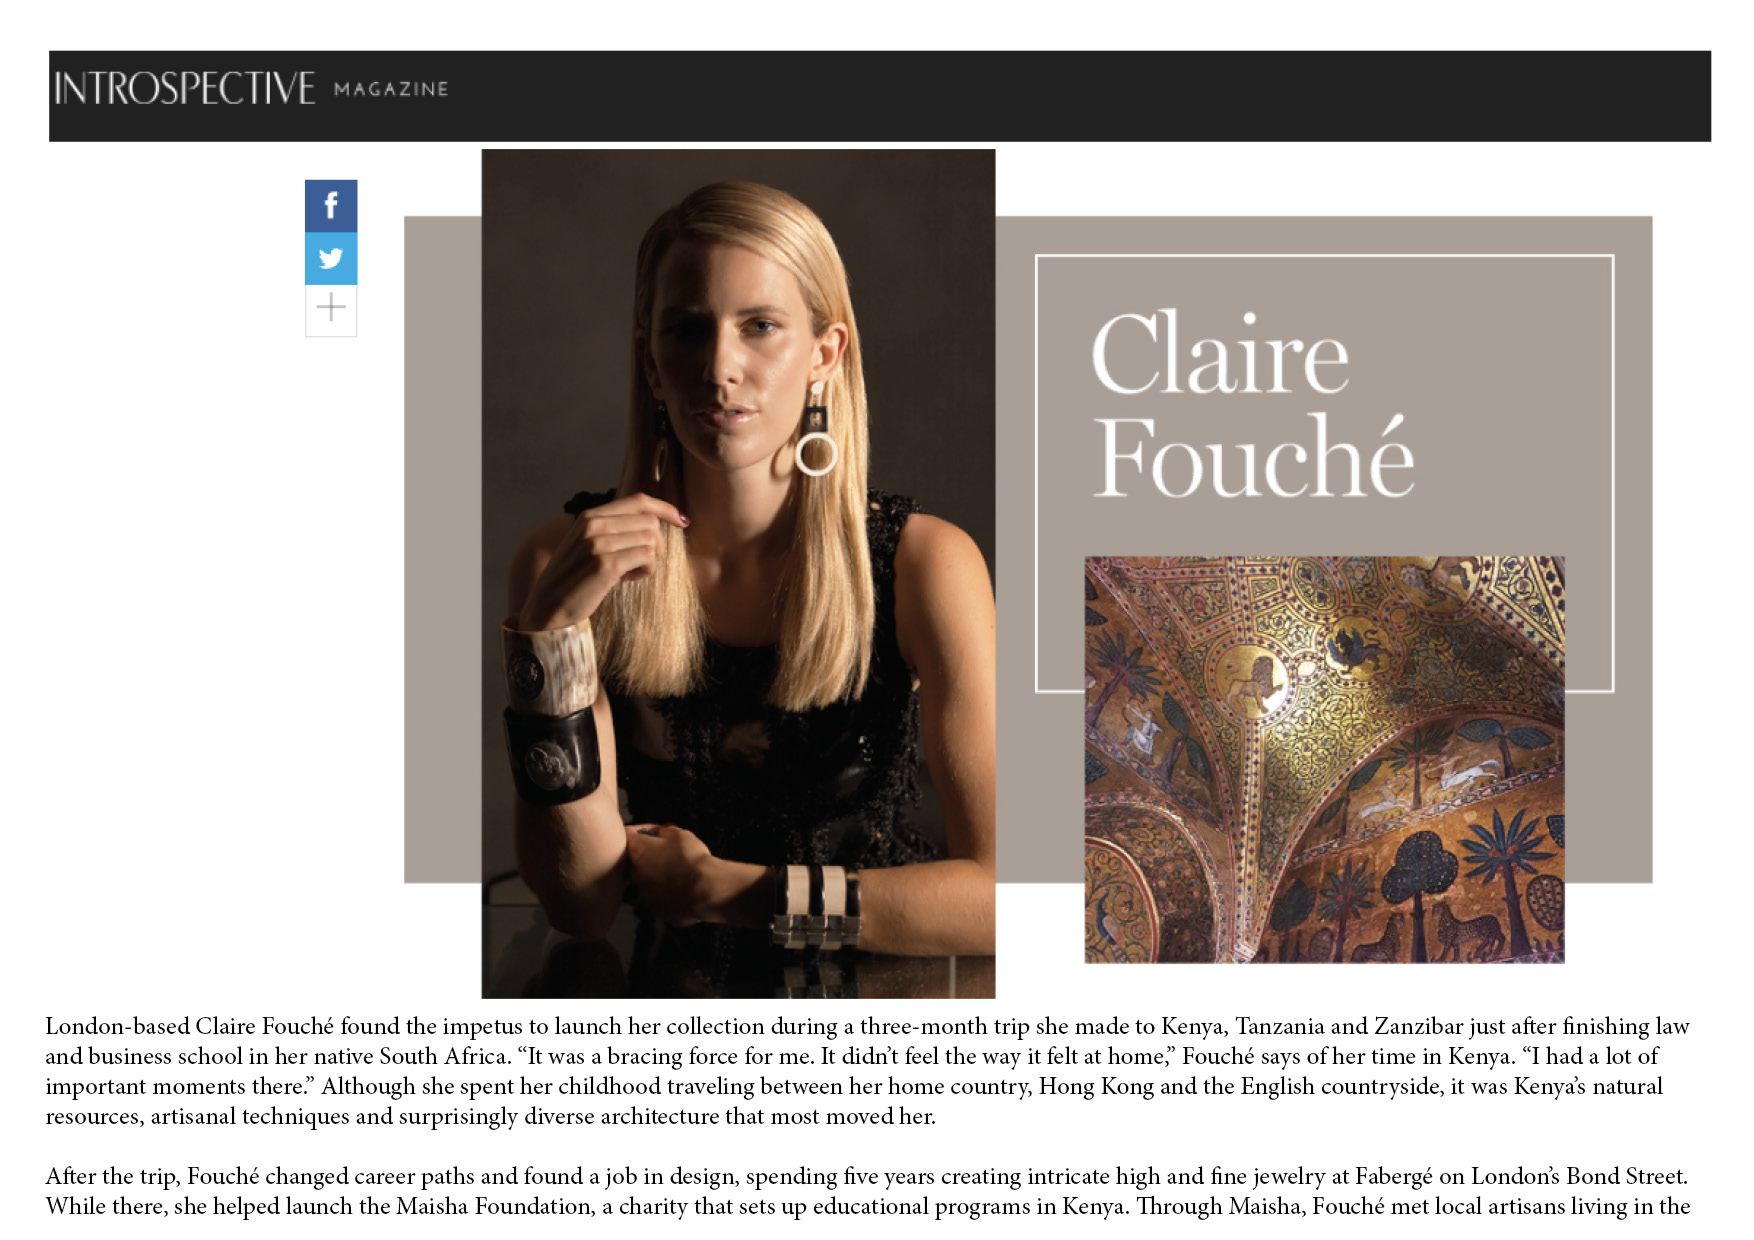 Interview with Claire Fouché